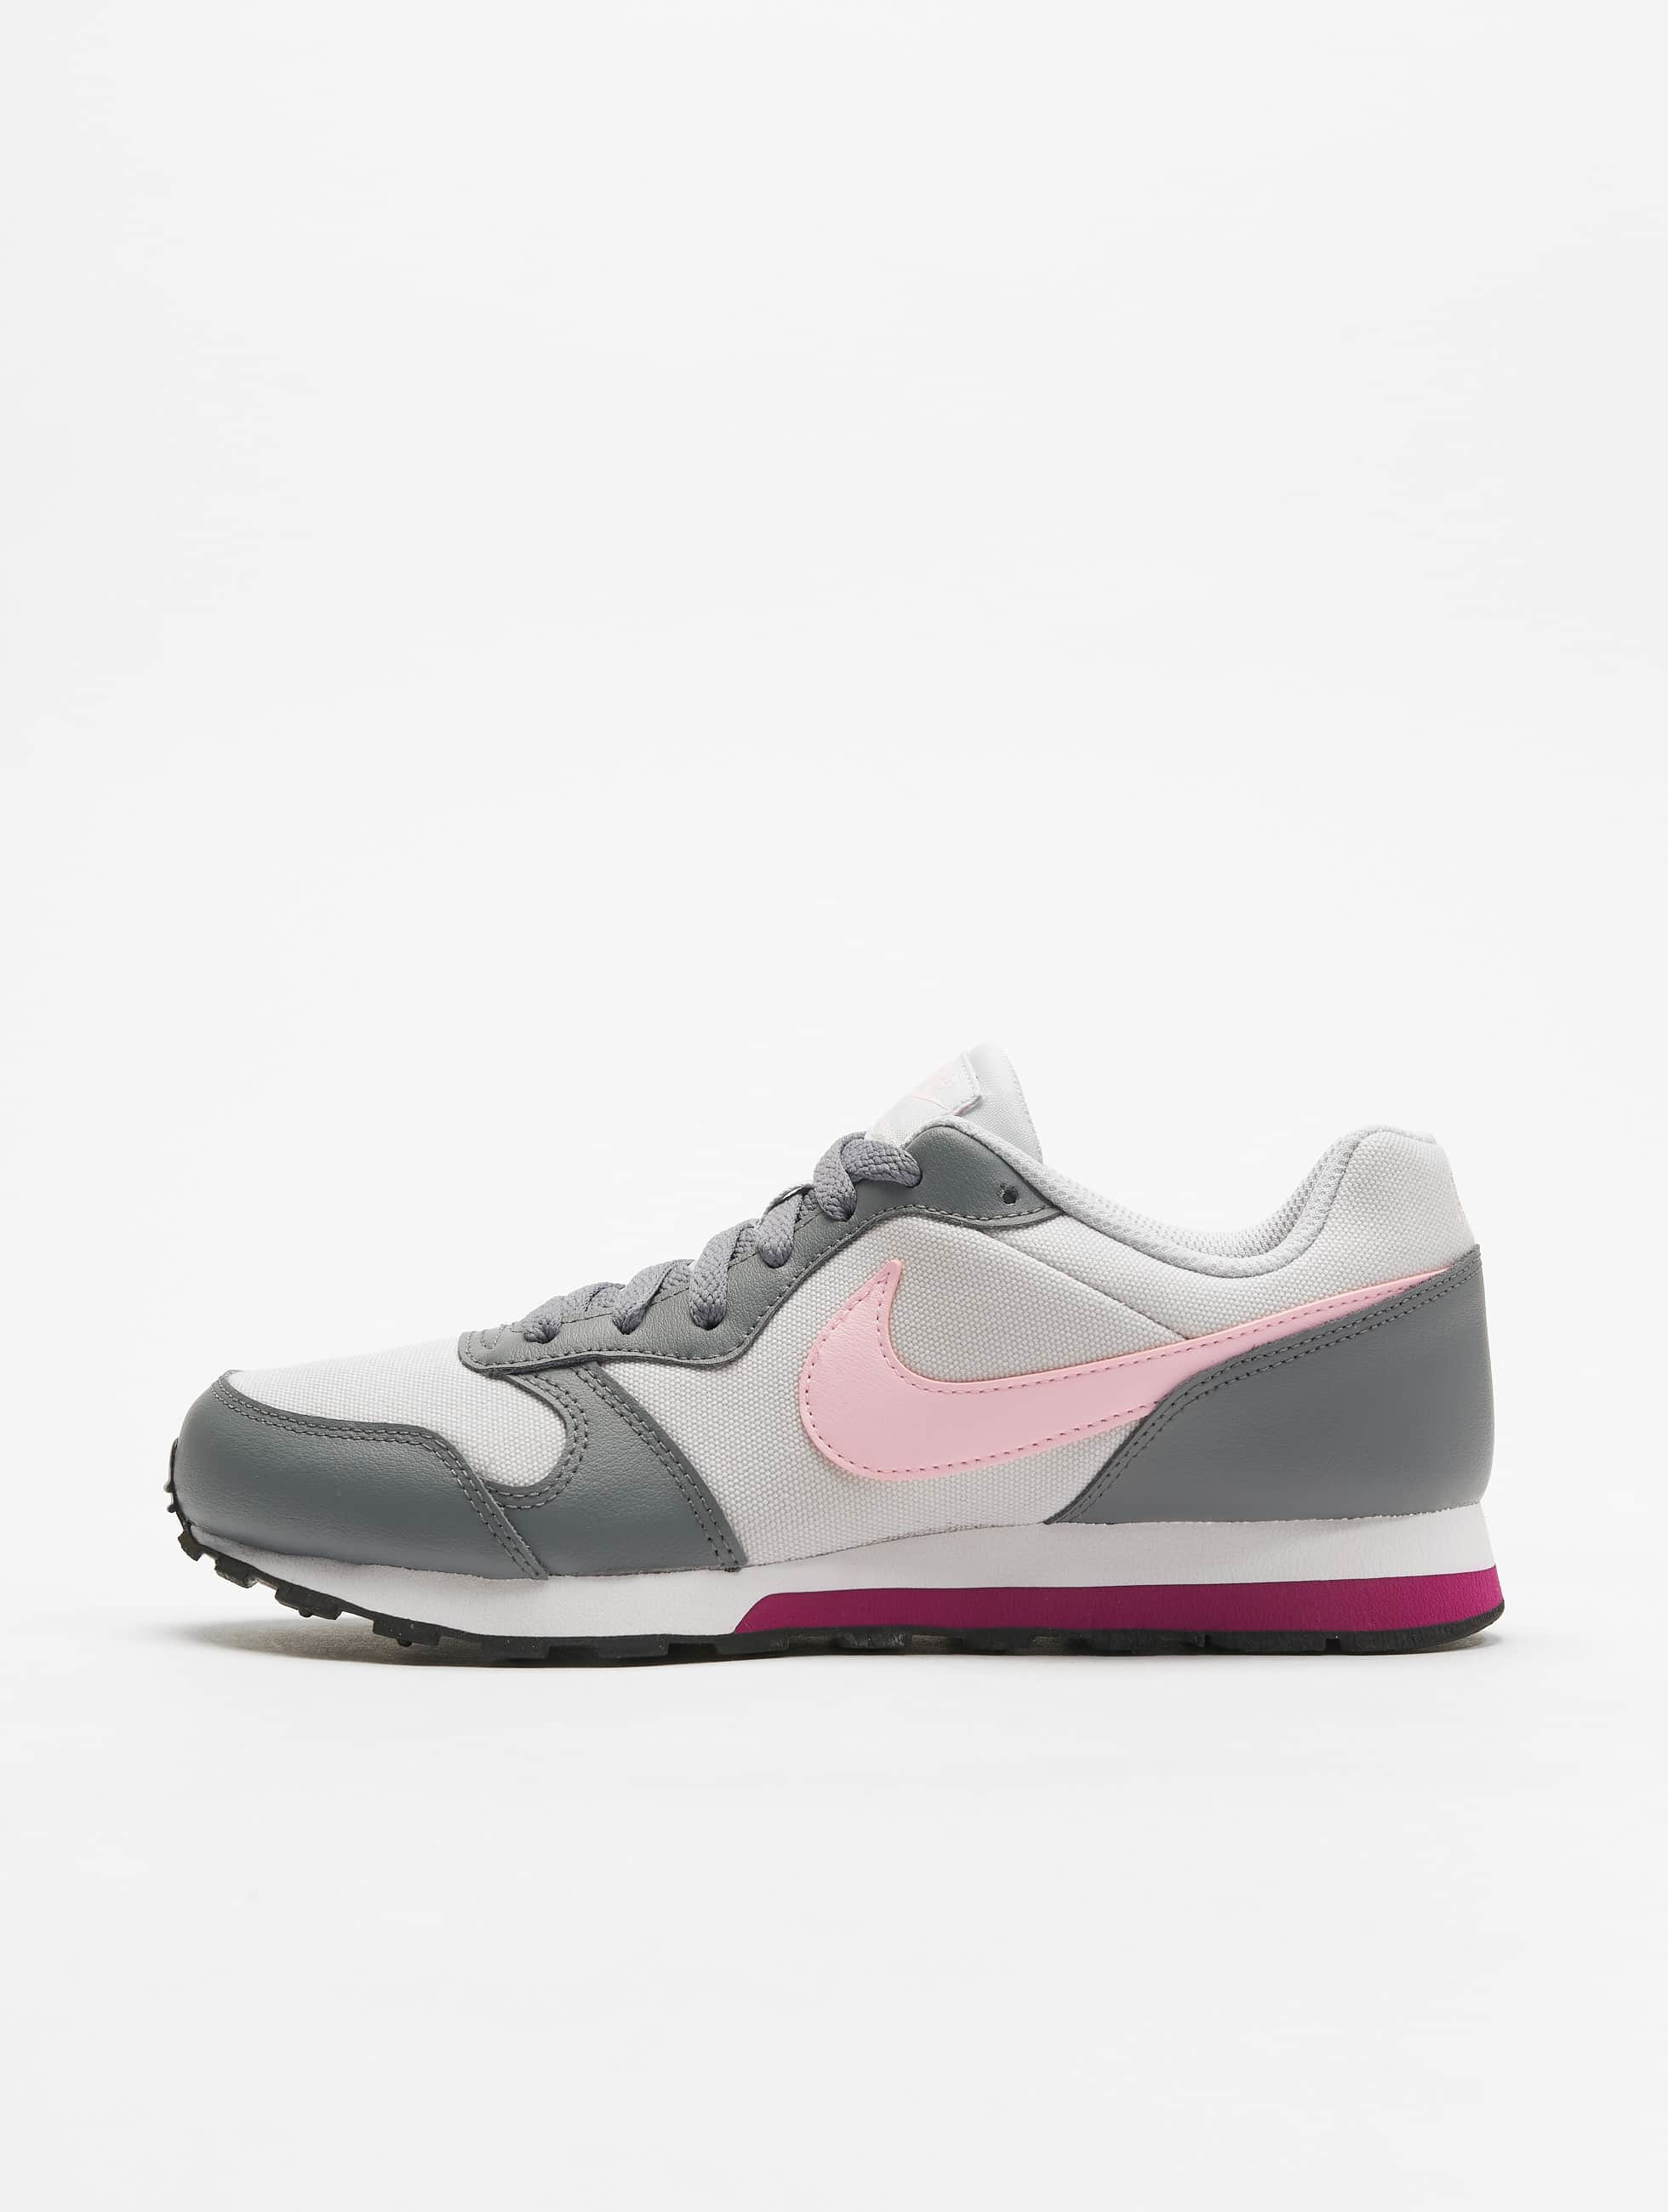 Platinumpink Mid Pure Runner Foamcool Nike 2gsSneakers Grey FT1JclK